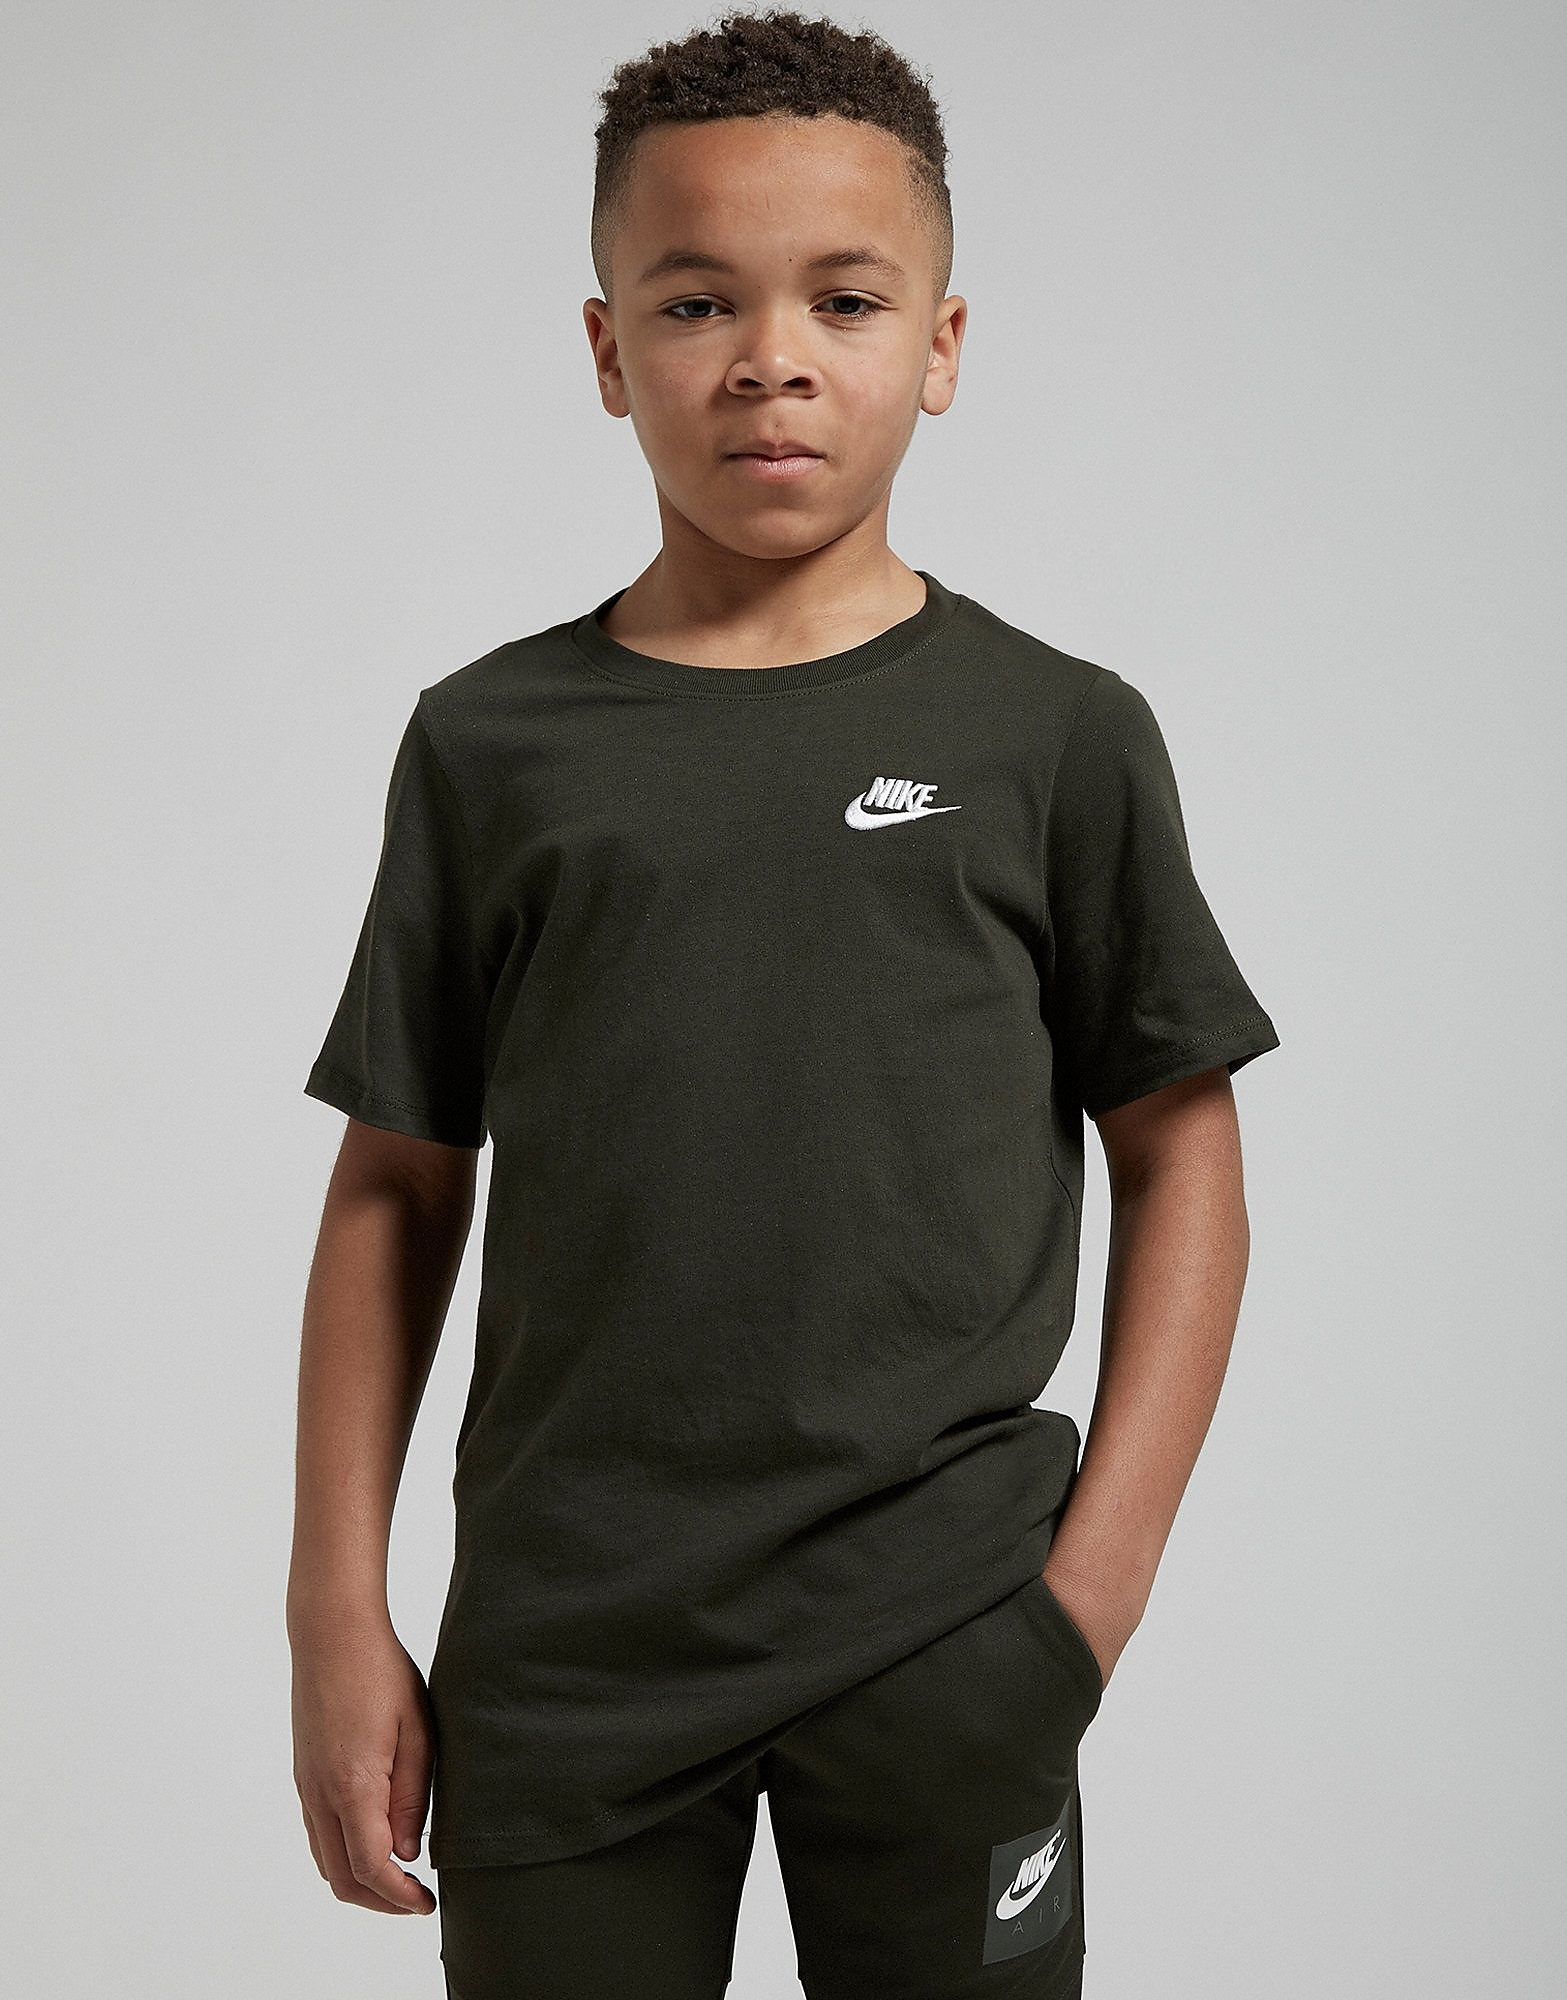 Nike Small Logo T-Shirt Junior - Sequoia/White - Kind